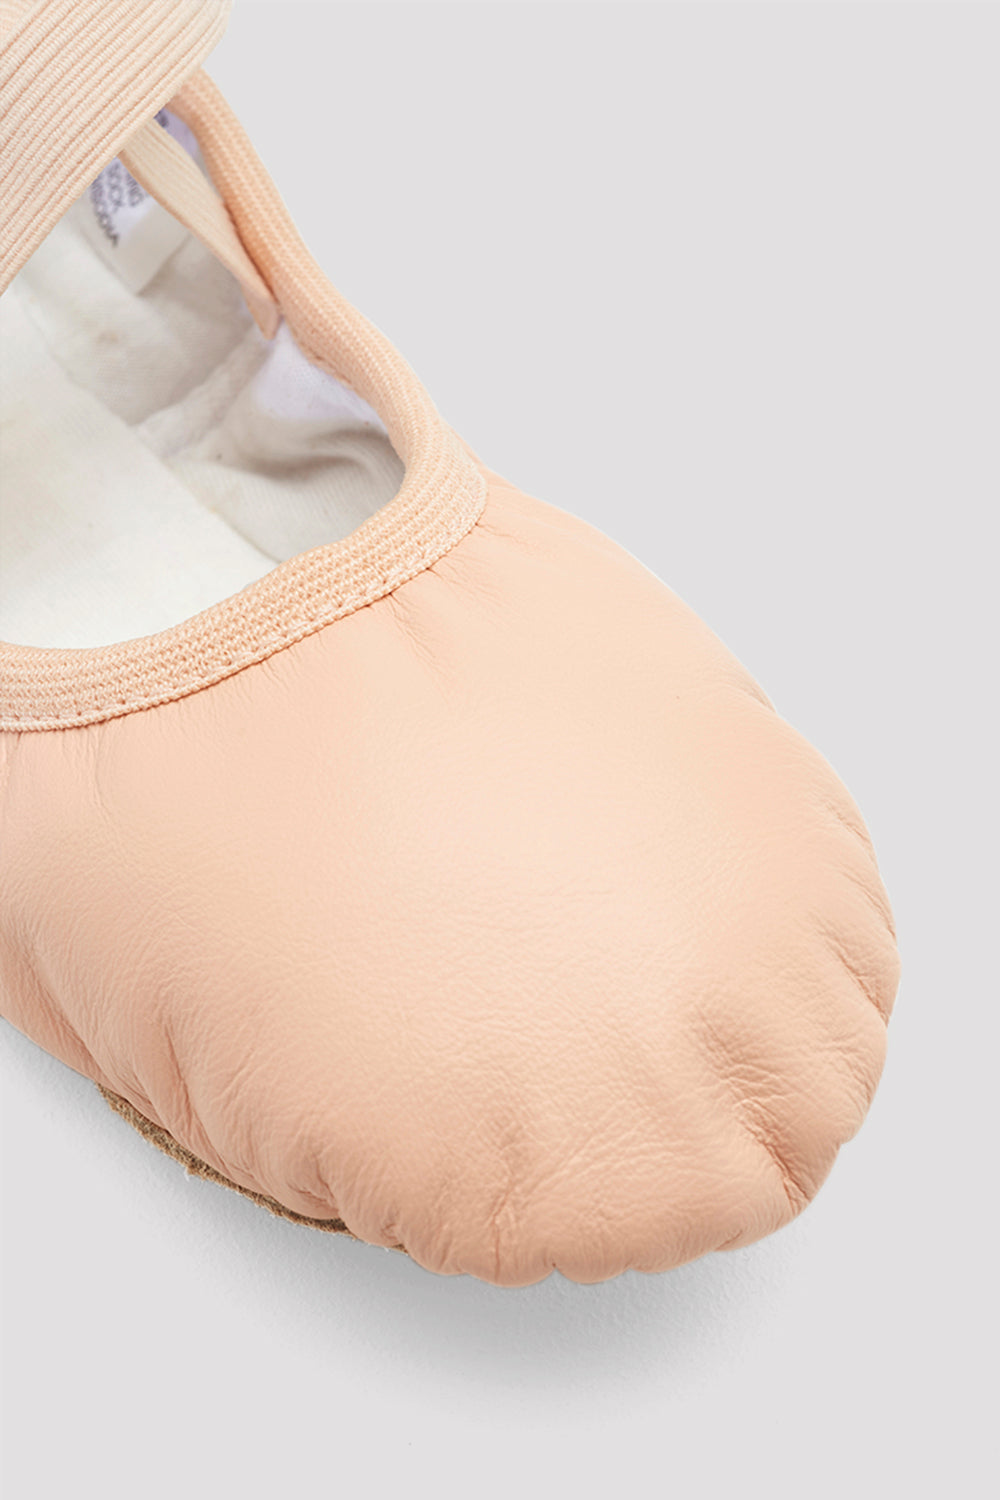 Girls Odette Leather Ballet Shoes - BLOCH US